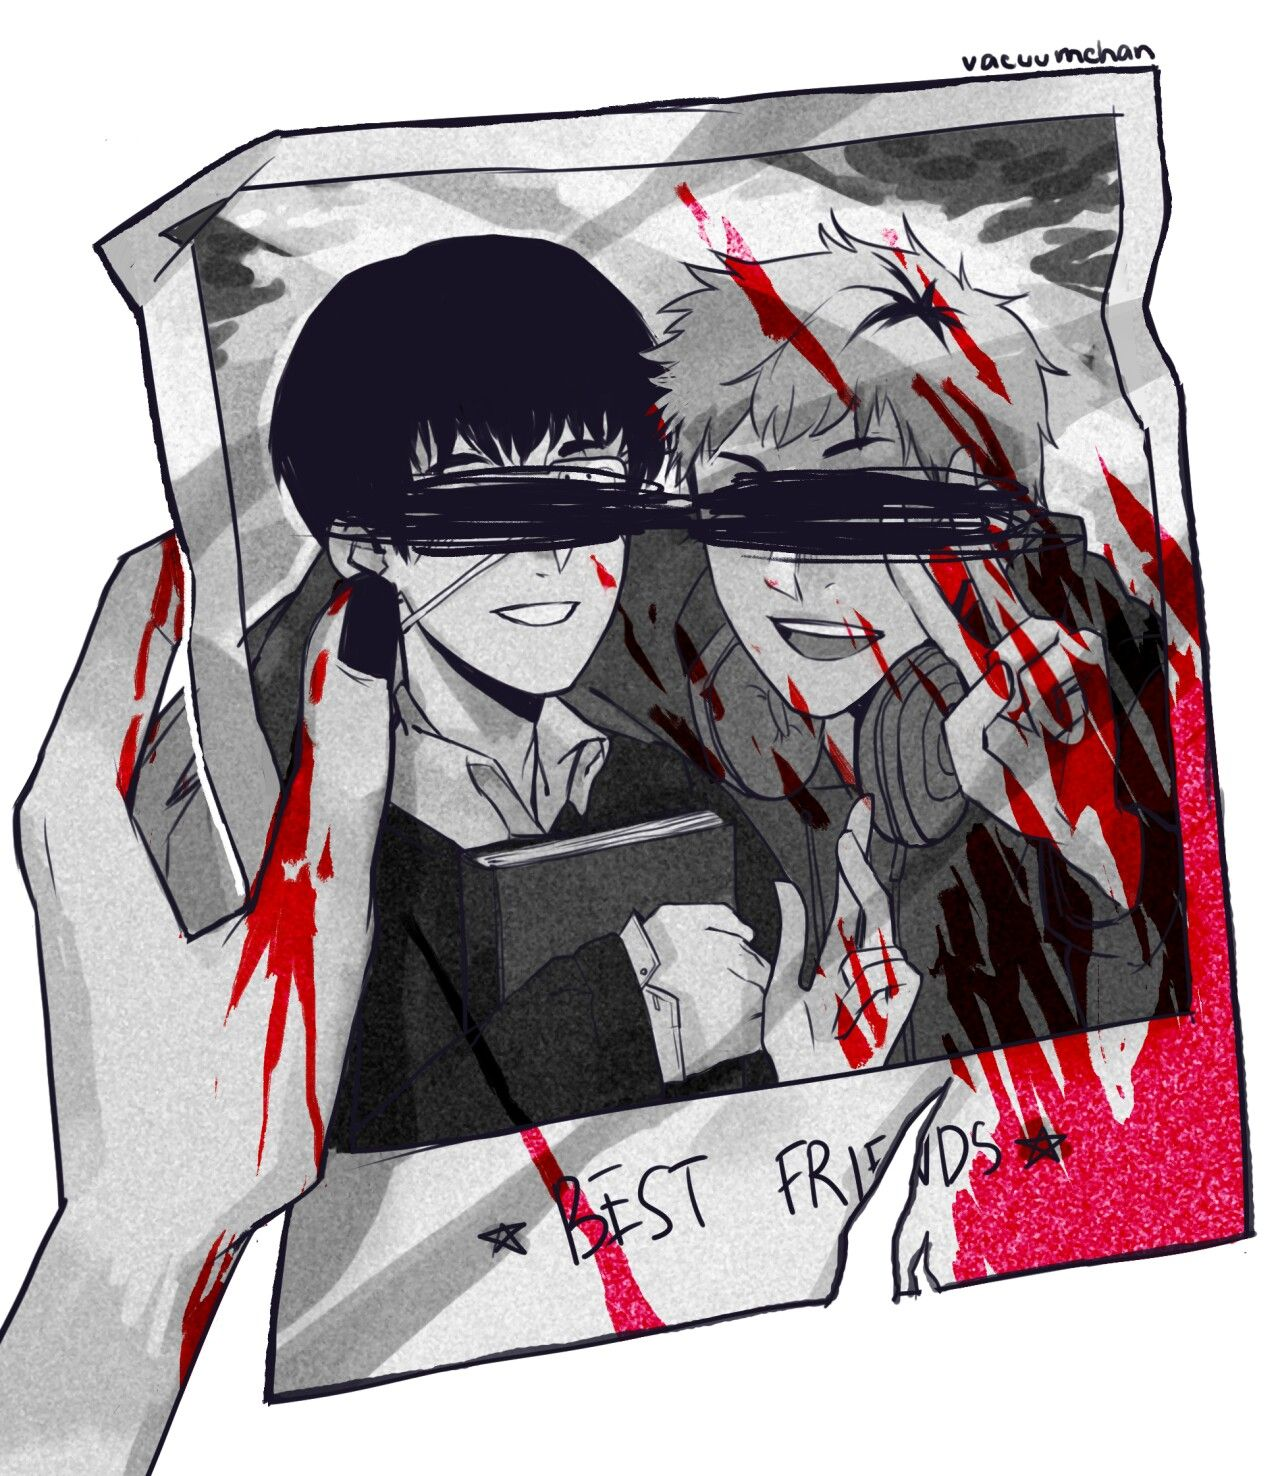 Pin by Lunatic on Anime Tokyo ghoul, Hide tokyo ghoul, Anime